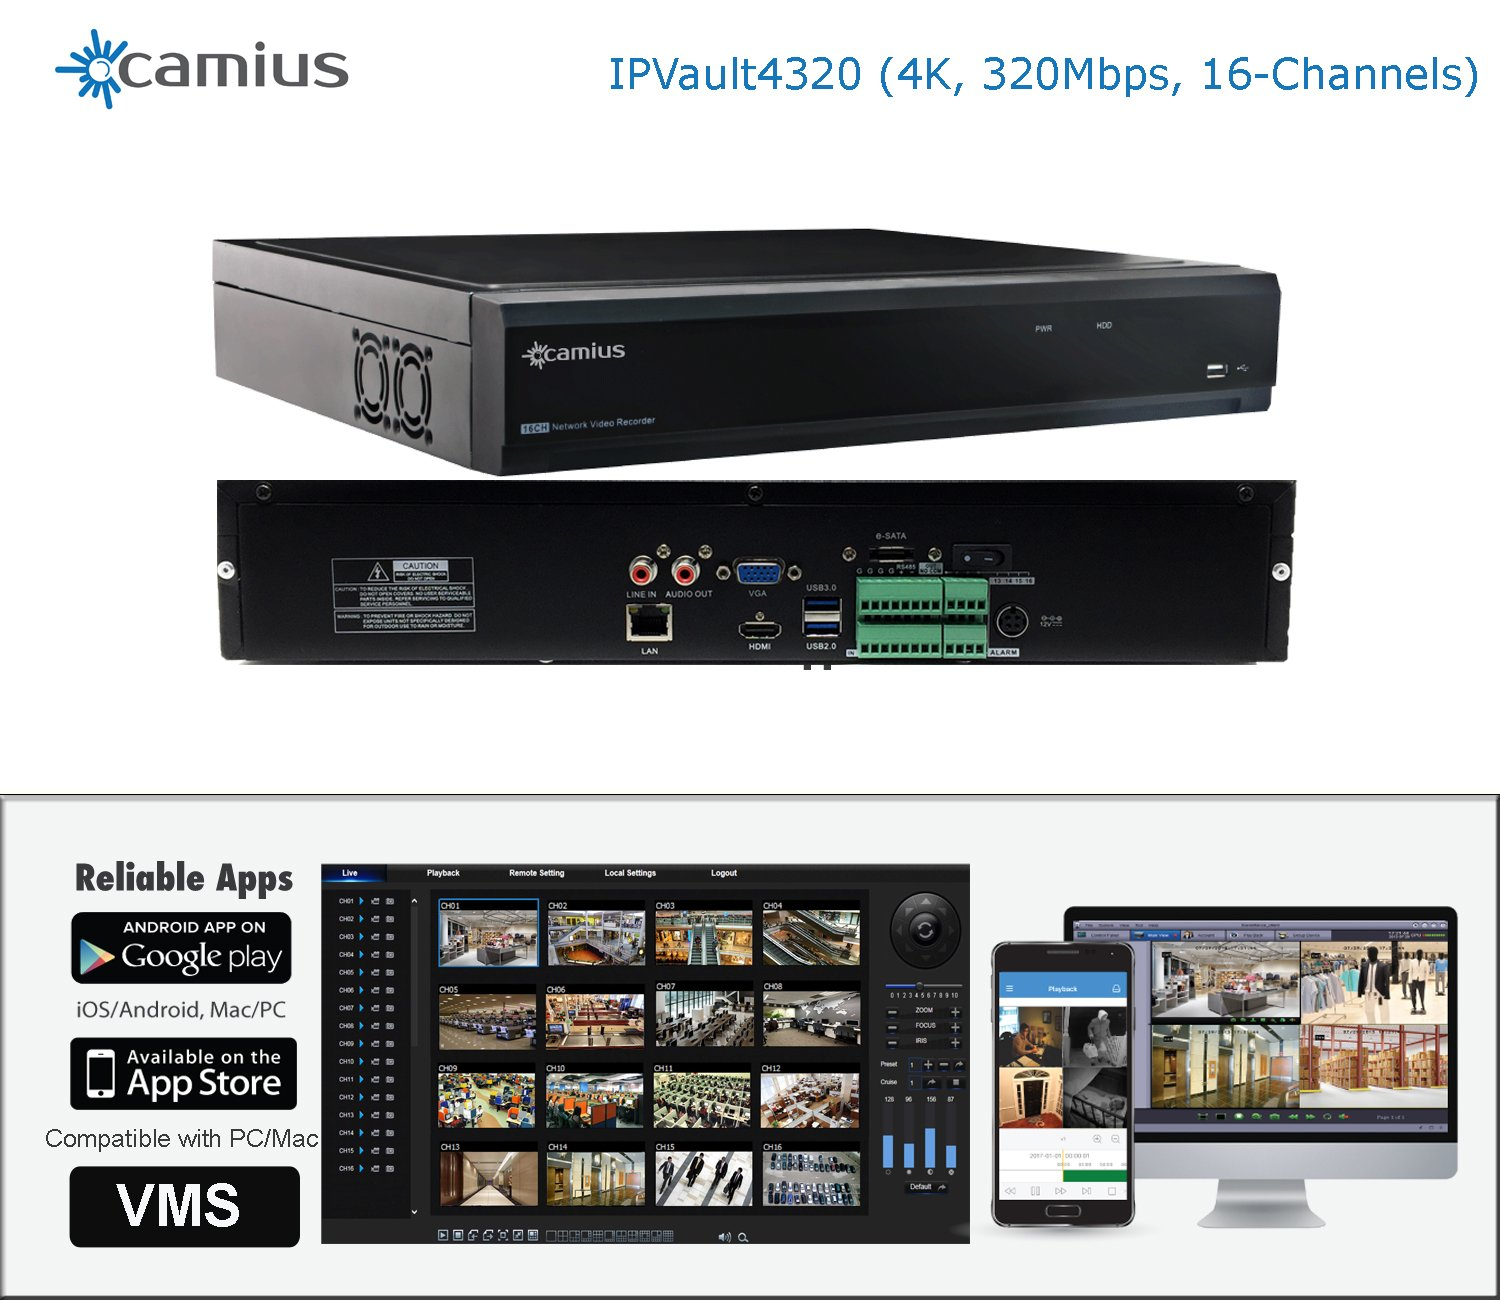 Camius IPvault4320 4K 16CH NVR, Supports Onvif IP camera, 4K HDMI, VGA output, FTP, DDNS, P2P, fits 4 SATA HDD (HDD is not included), Remote Access